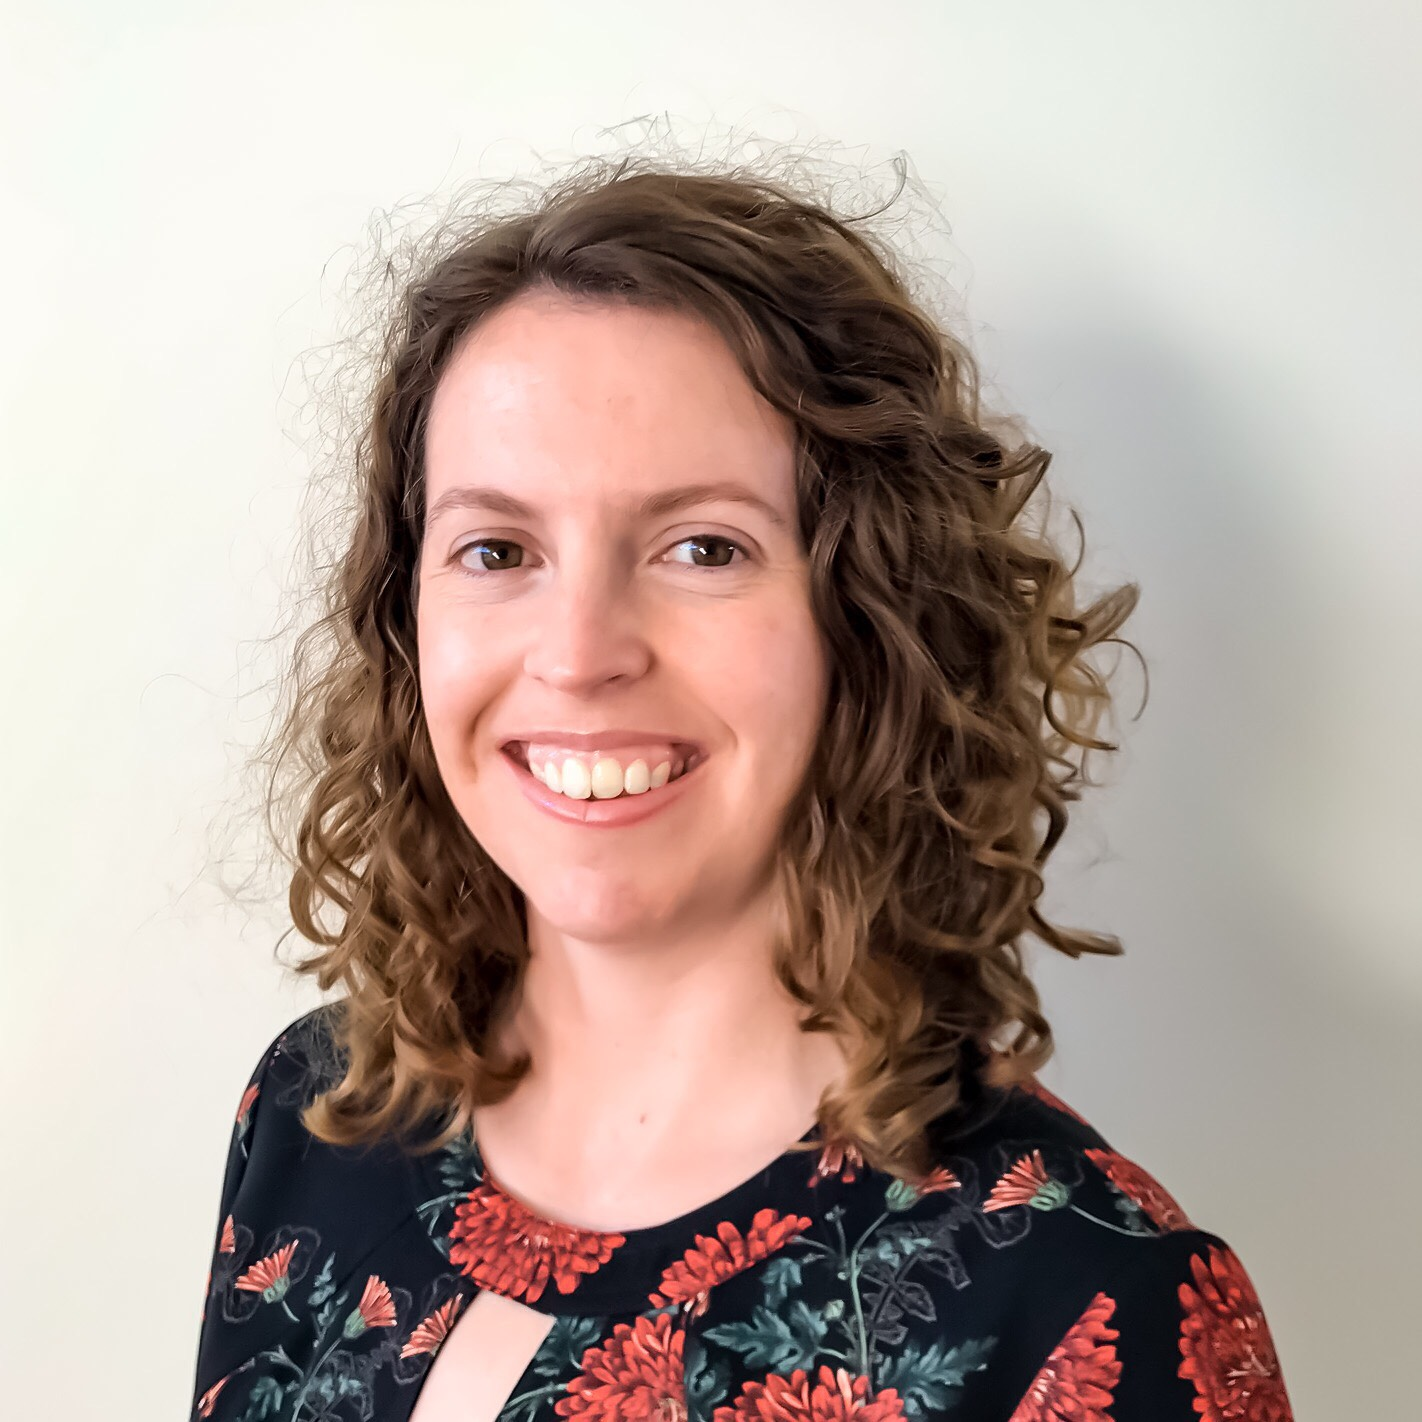 Stephanie Mitchell - PhD, MS, ME (Hons), BE (Hons) Head of Data Science